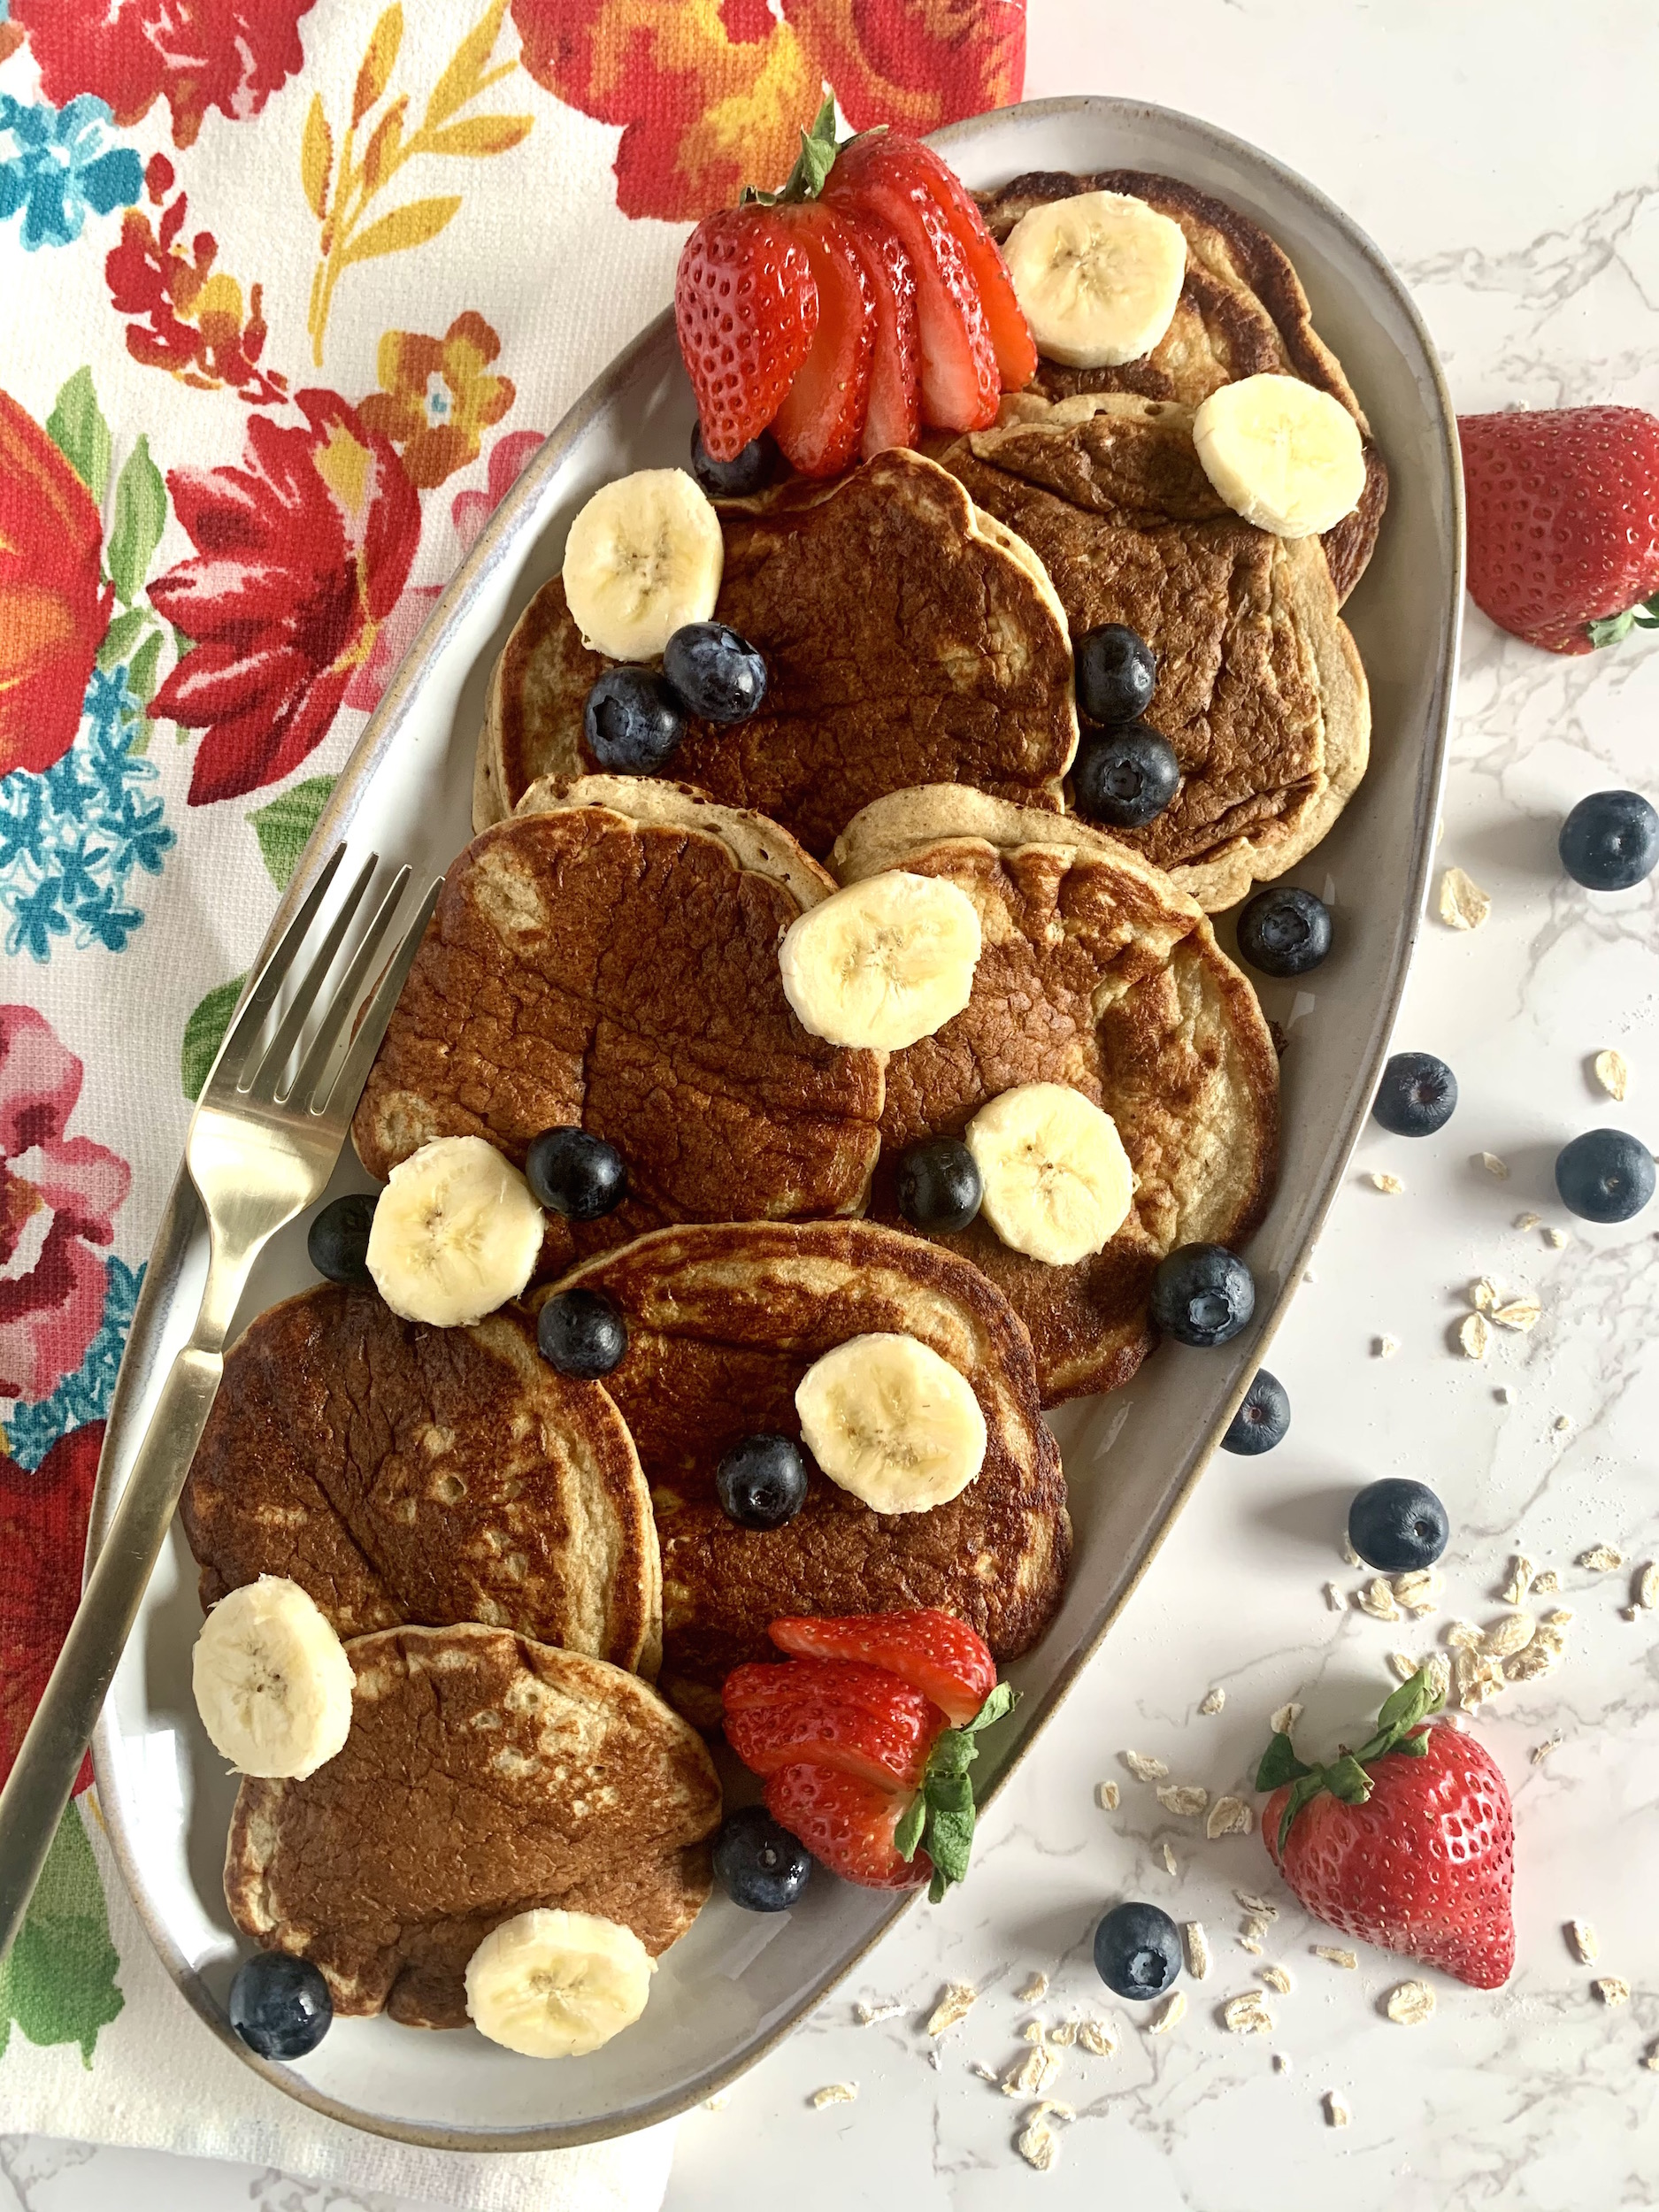 Banana Oatmeal Pancakes on a grey, oval platter with sliced bananas, blueberries and strawberries